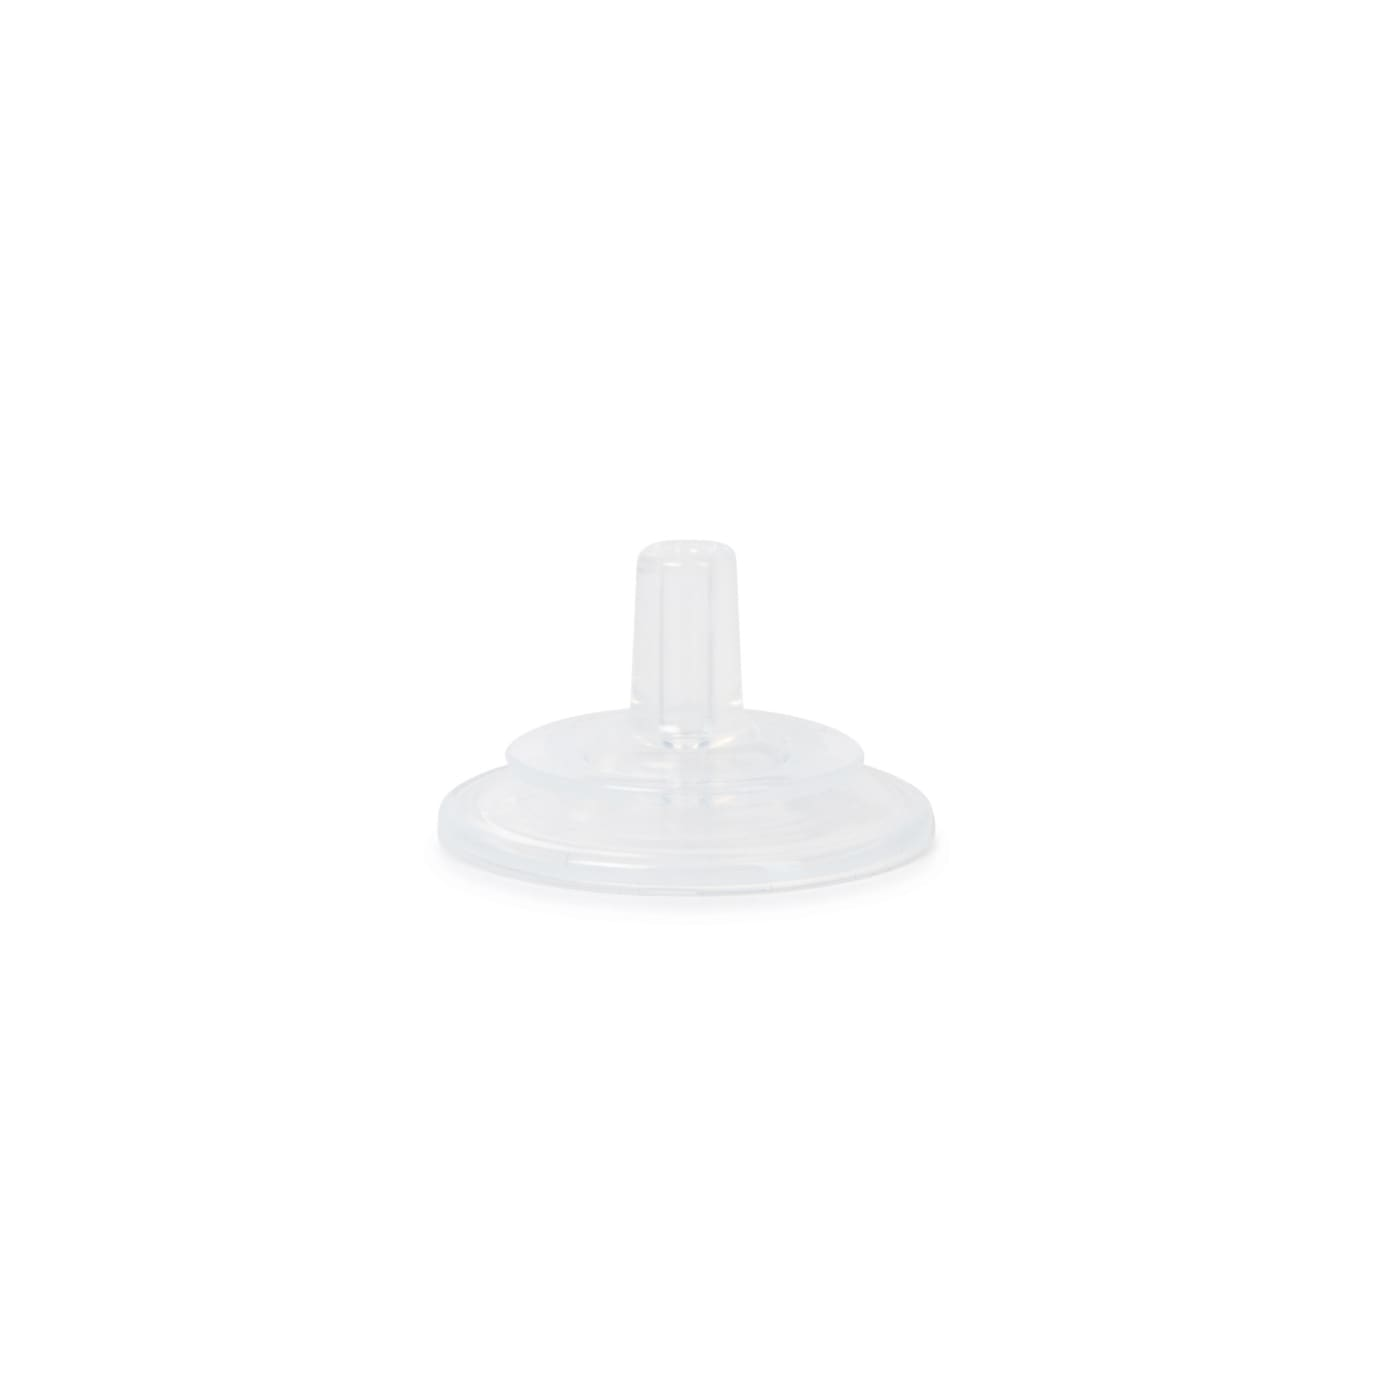 Subo Clear Silicone Straw - Small - Small - NURSING & FEEDING - CONTAINERS/FEEDERS